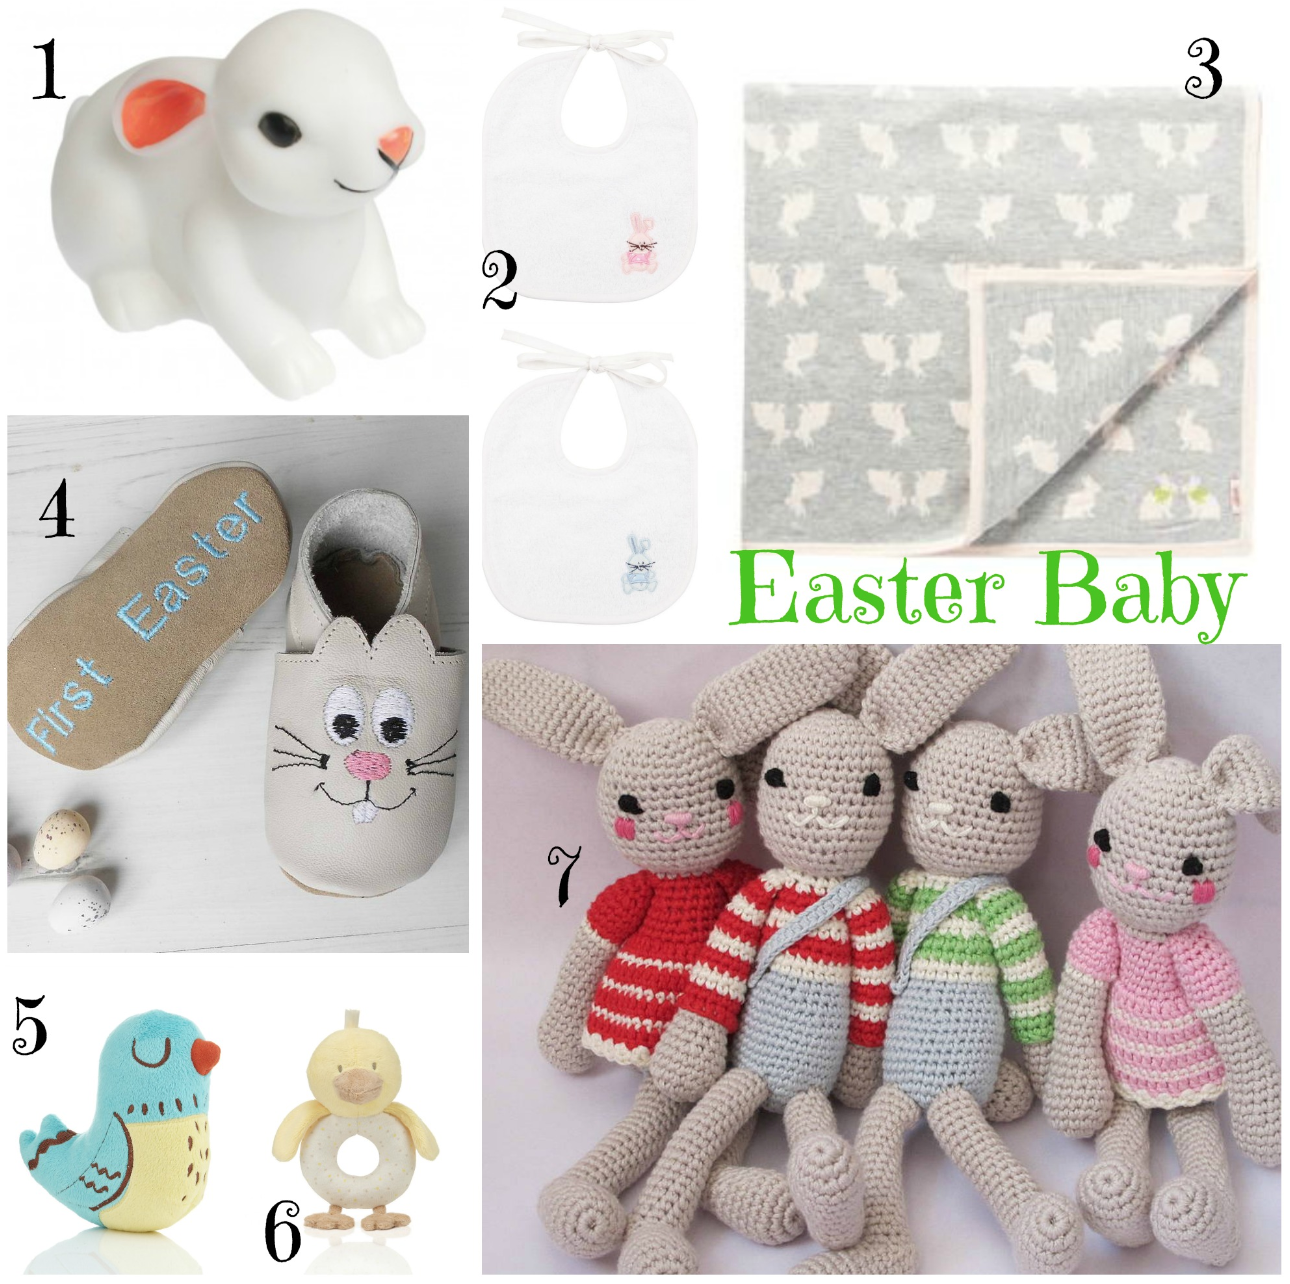 Cracking easter gifts for a springtime baby v i buys mamas vib cracking easter gifts for a springtime baby v i buys negle Gallery